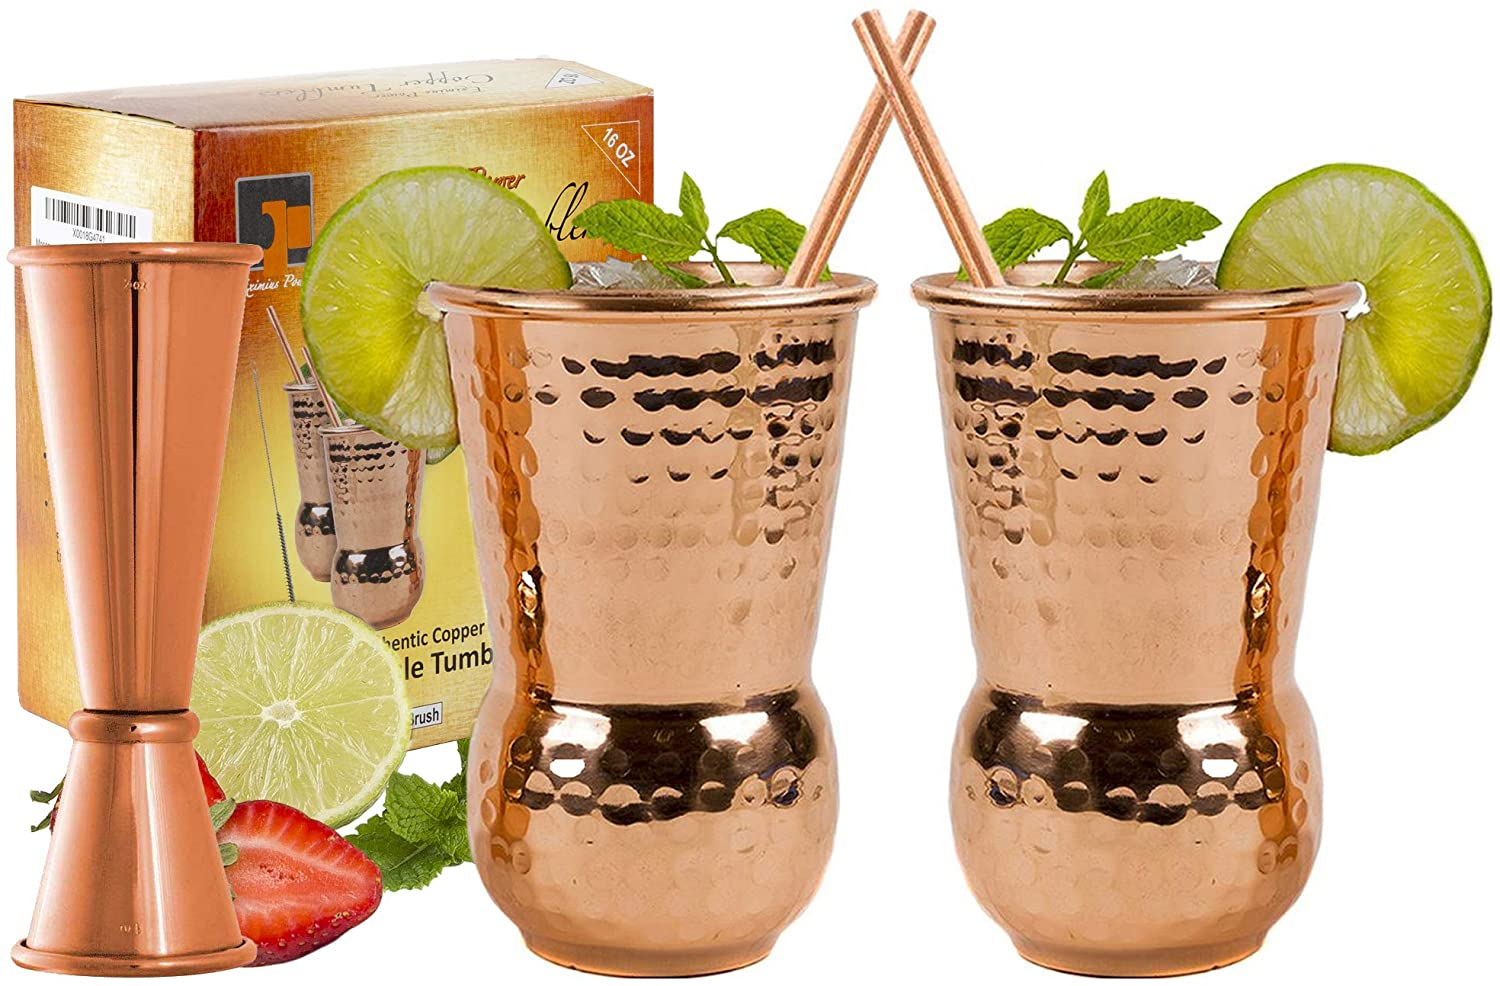 Eximius Power Extra Thick Hefty Moscow Mule Copper Tumblers For those looking for s